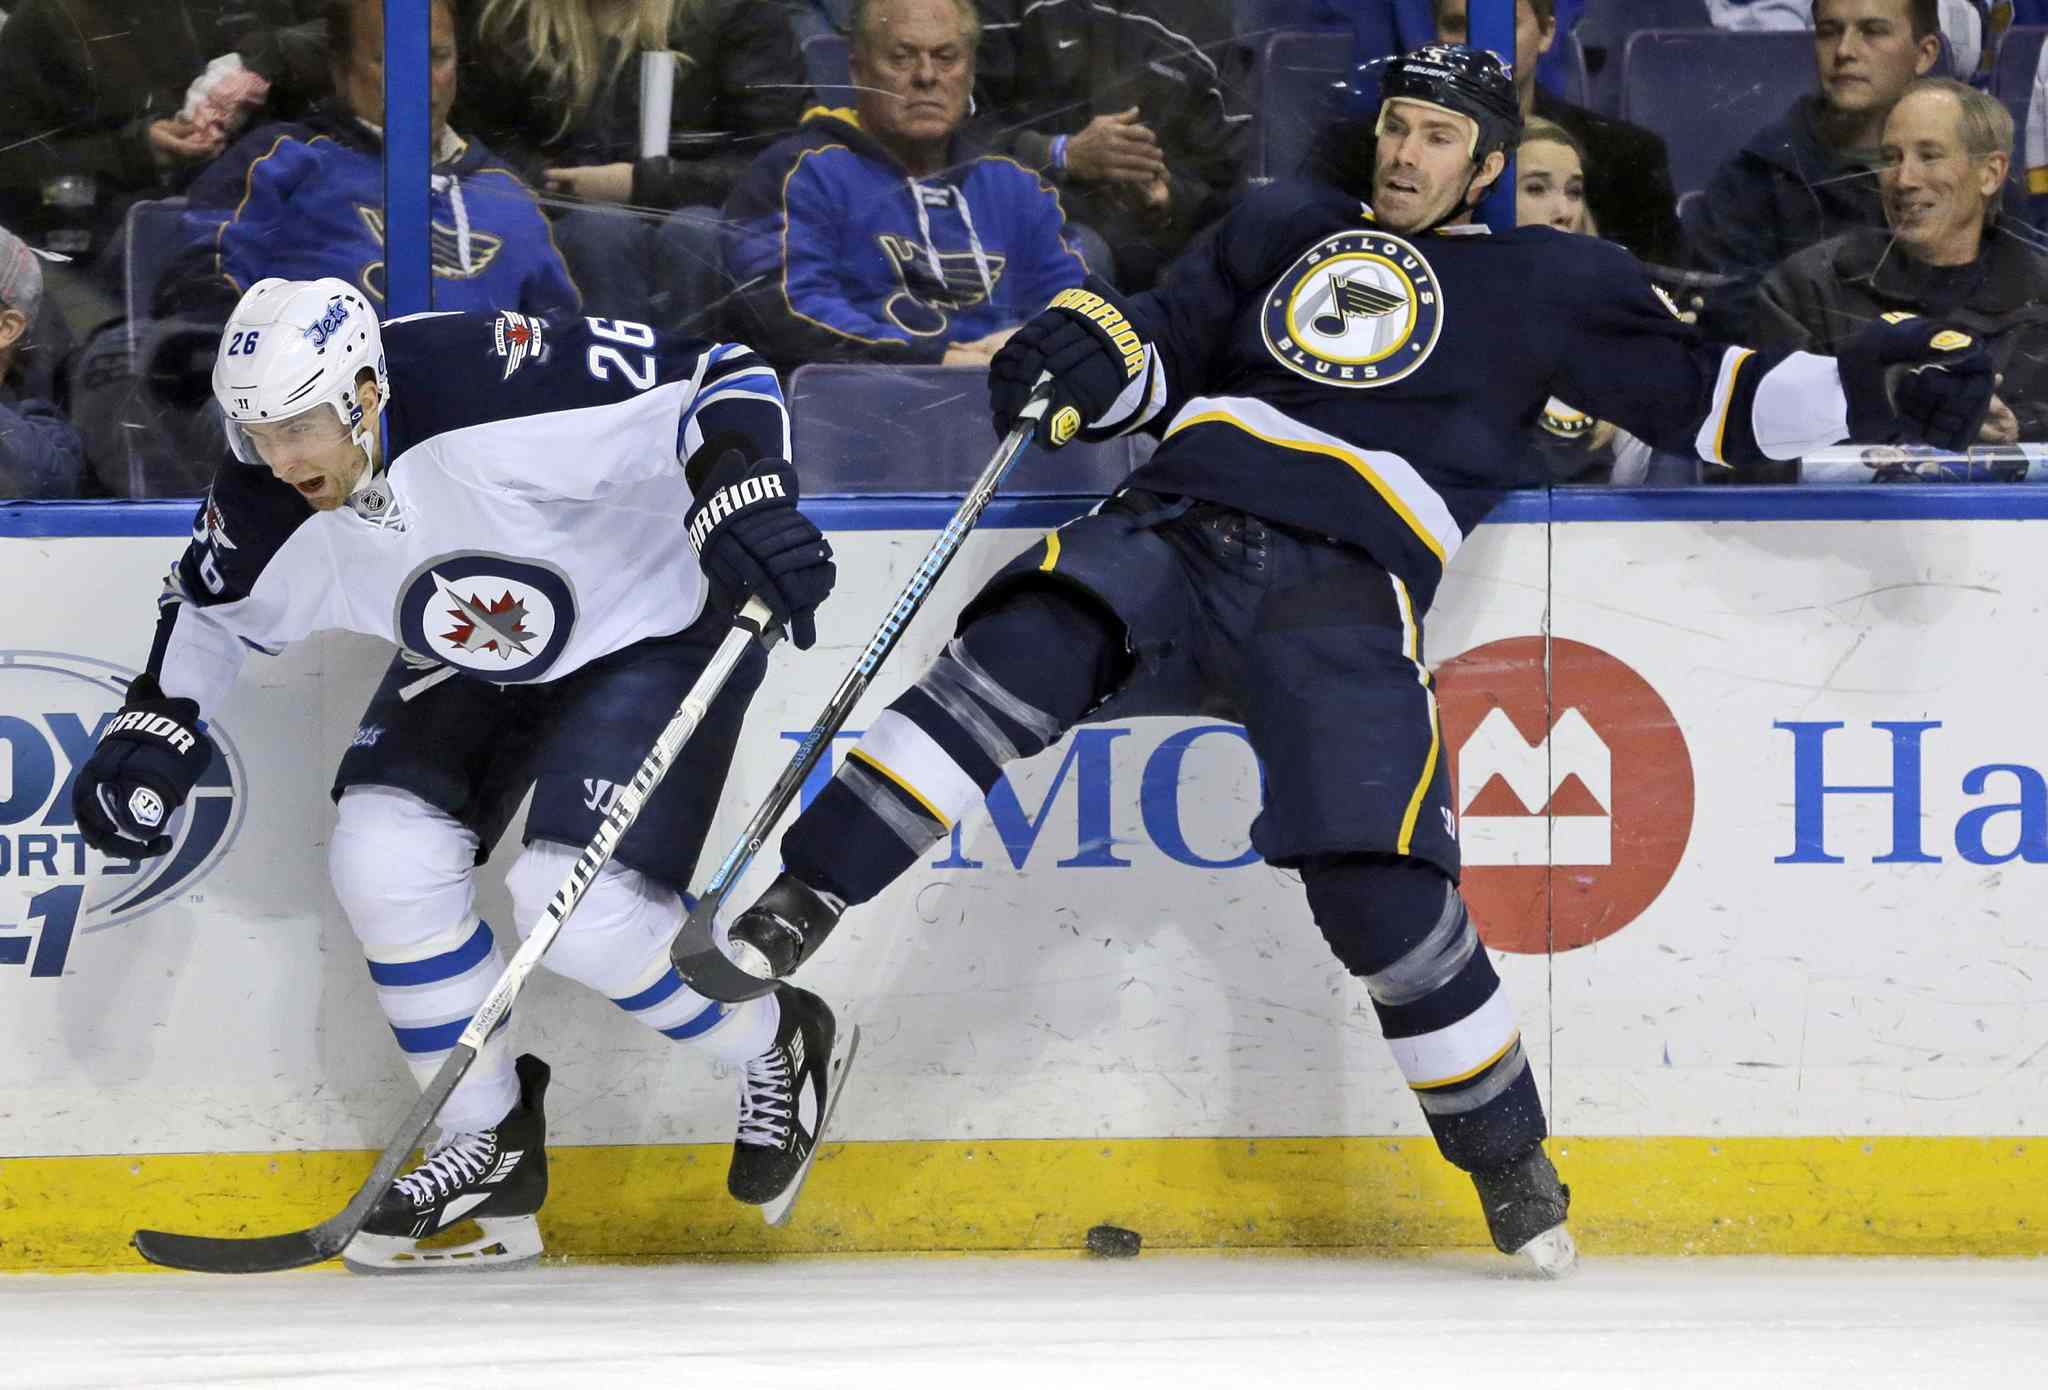 Winnipeg Jets' Blake Wheeler, left, and St. Louis Blues' Barret Jackman collide along the boards while chasing a loose puck during the first period.